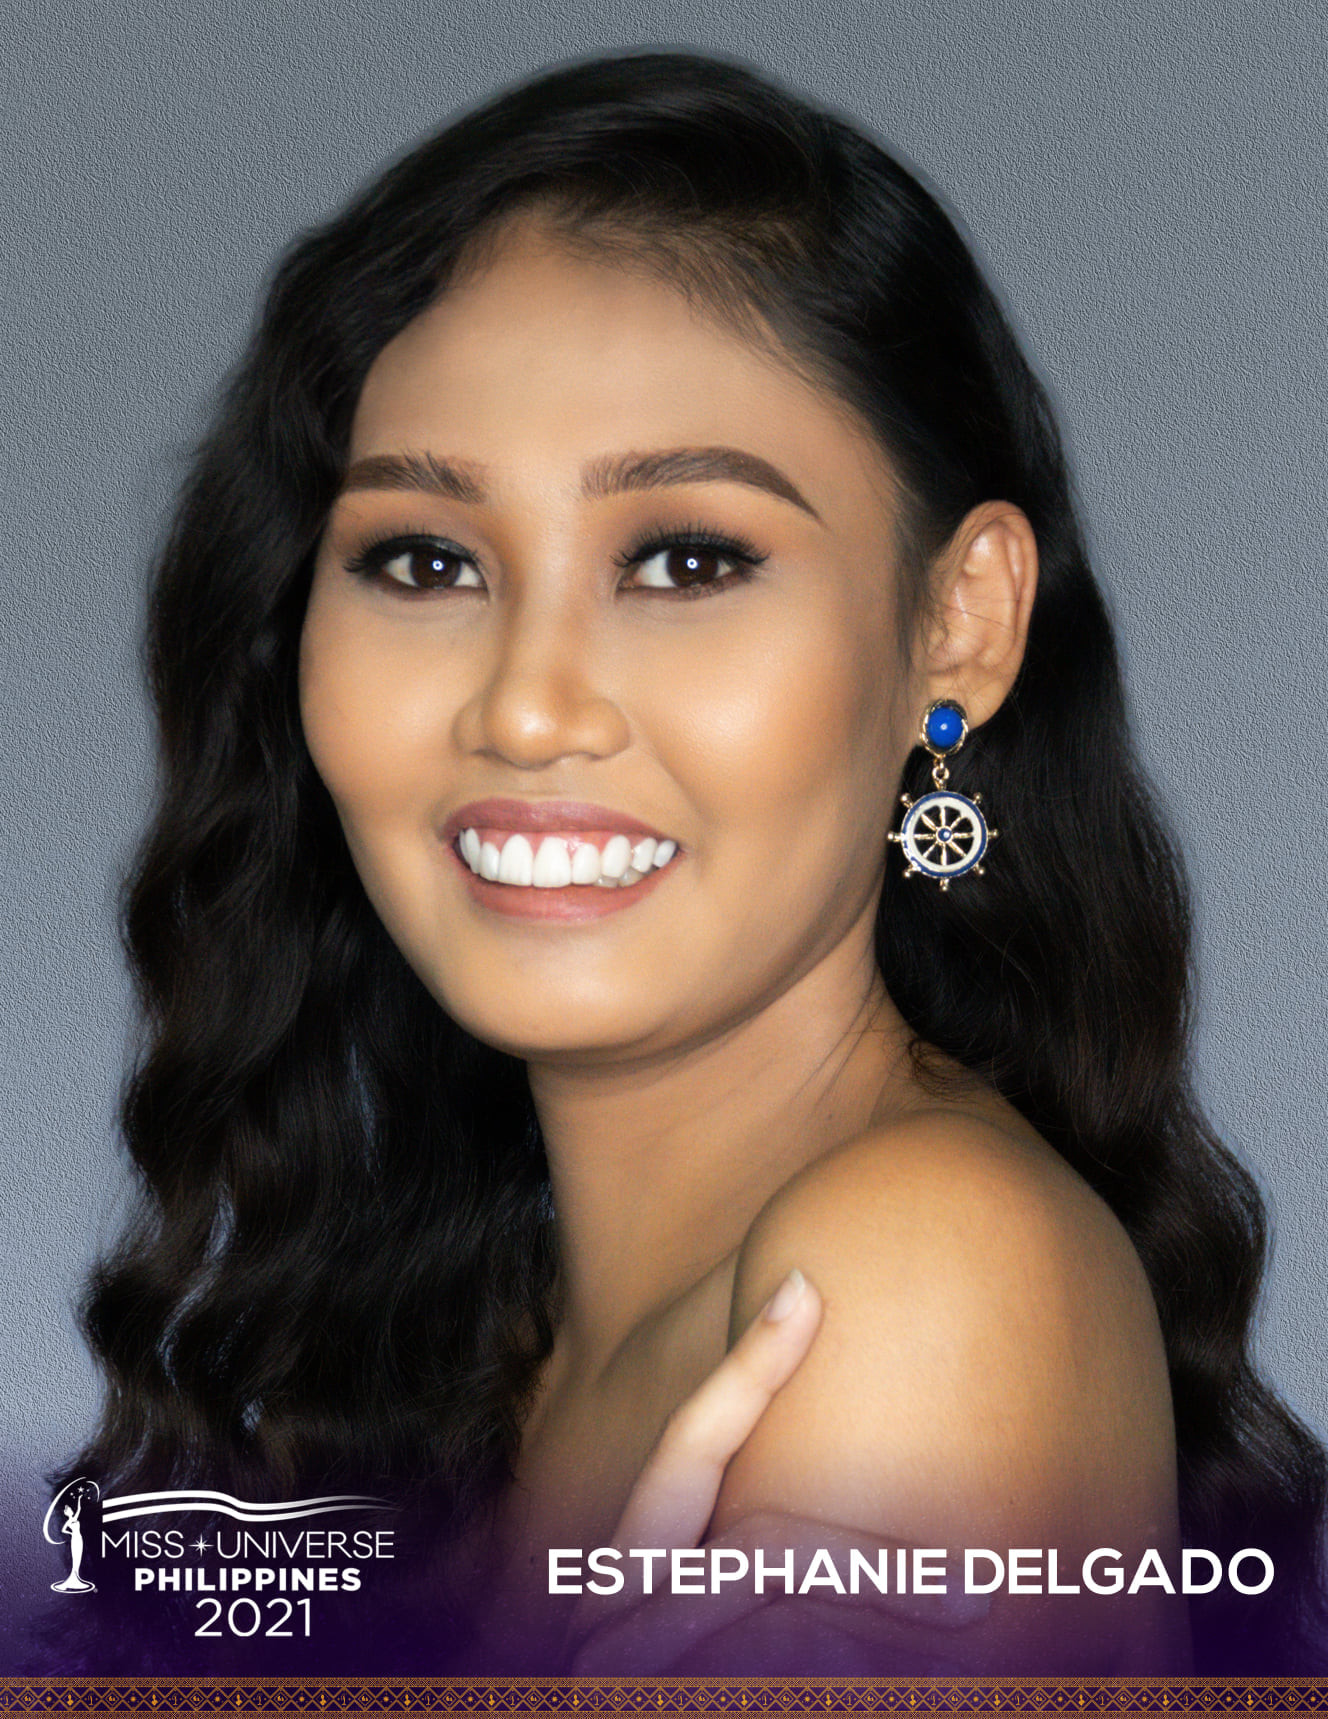 pre-candidatas a miss universe philippines 2021. AlFtAg